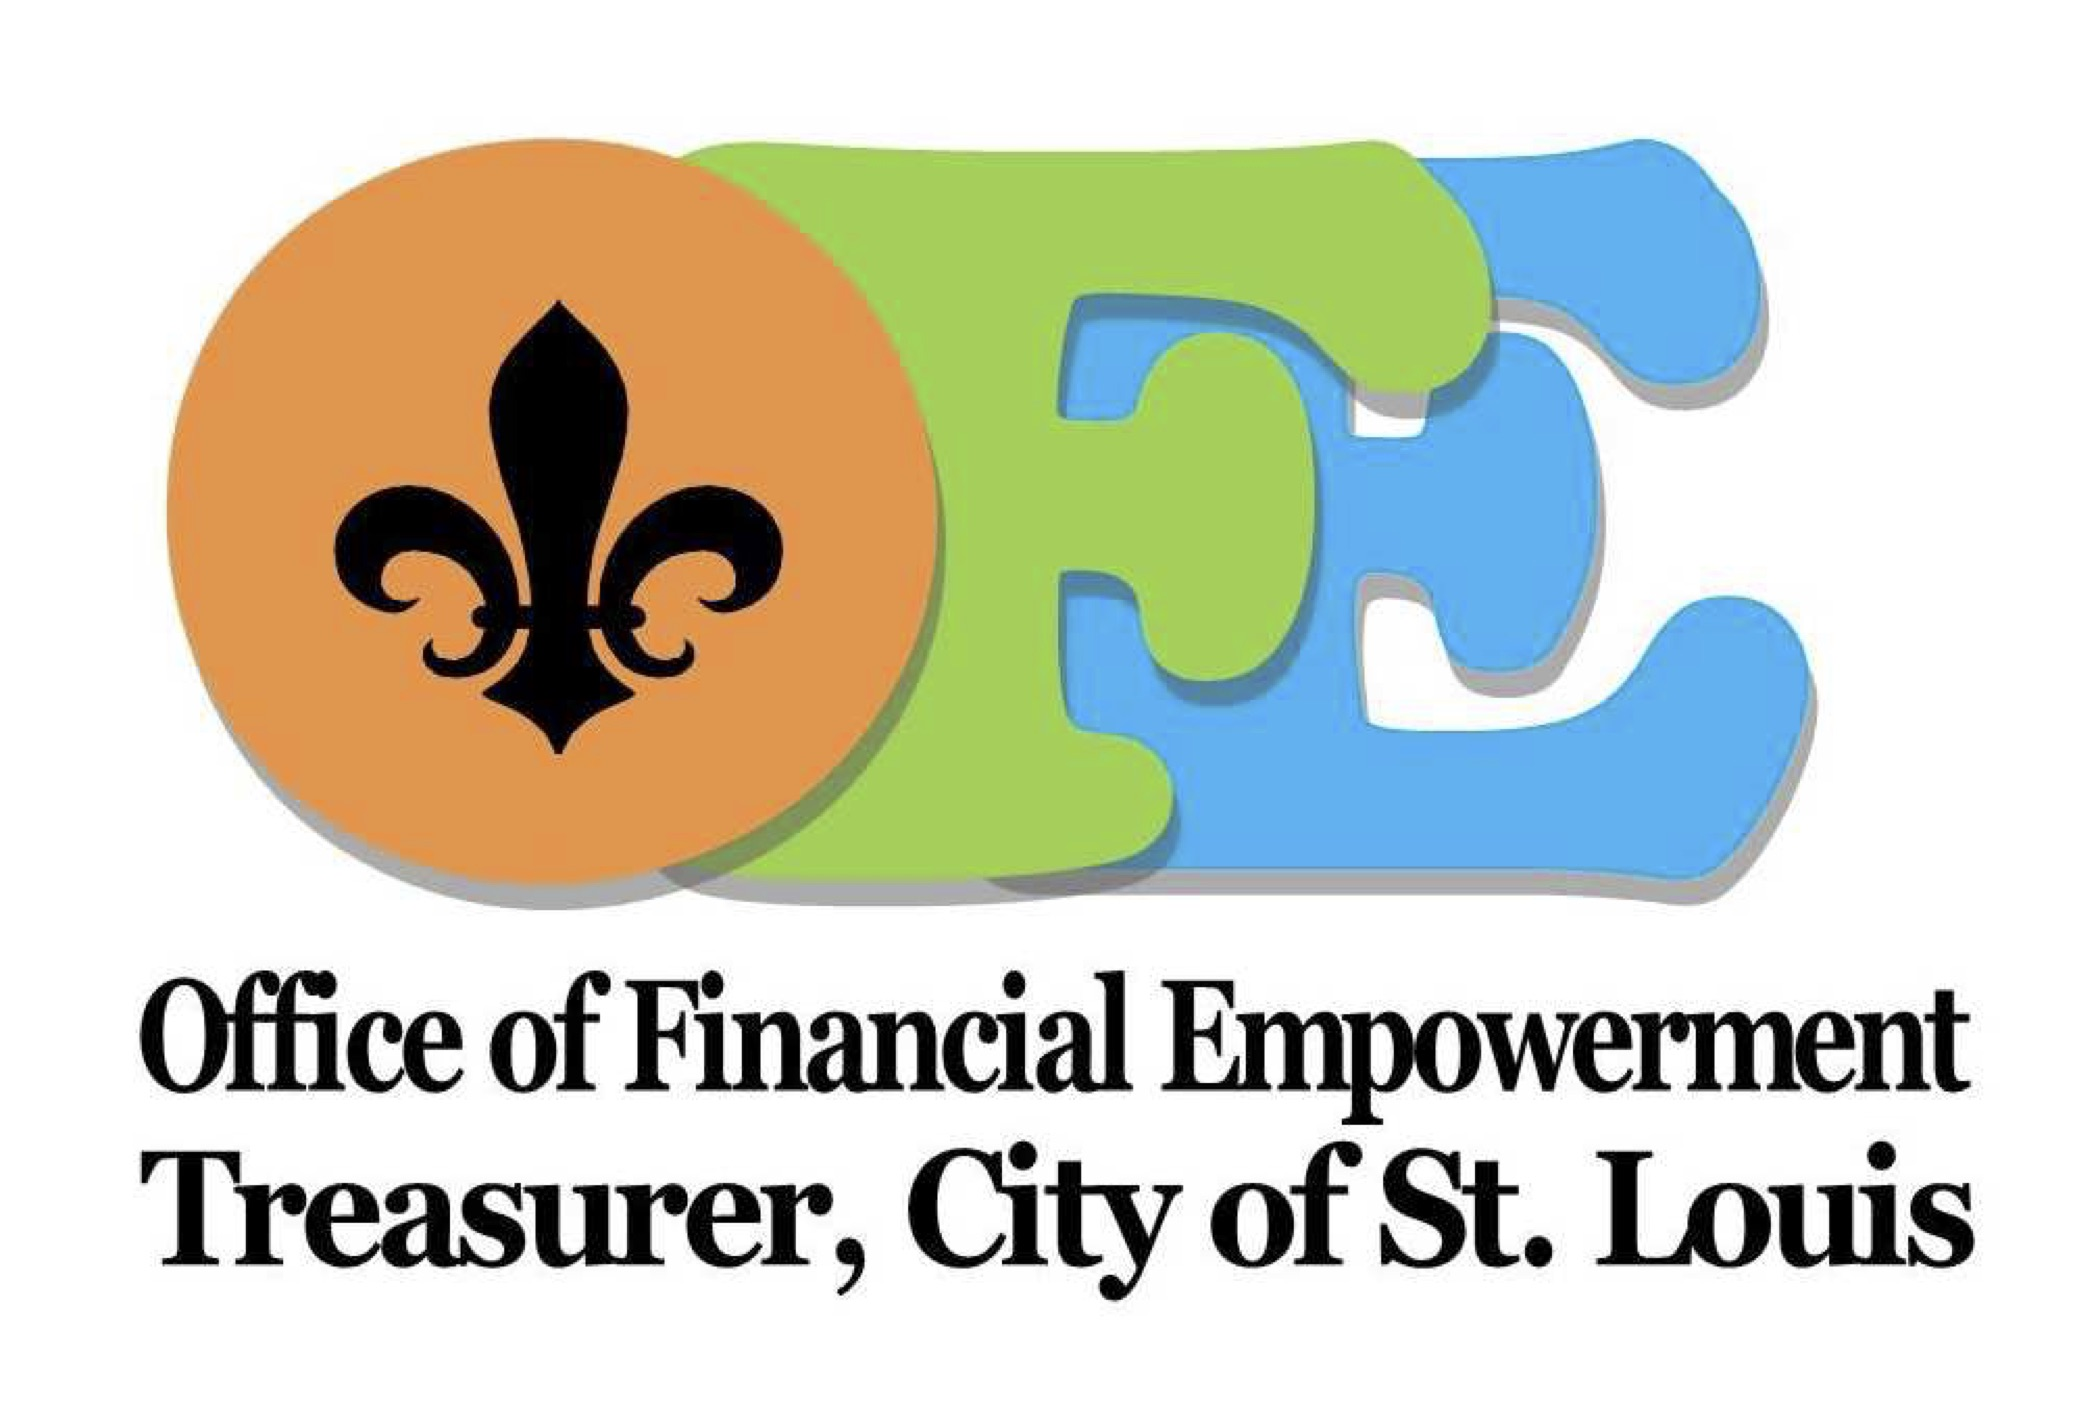 Office of Financial Empowerment